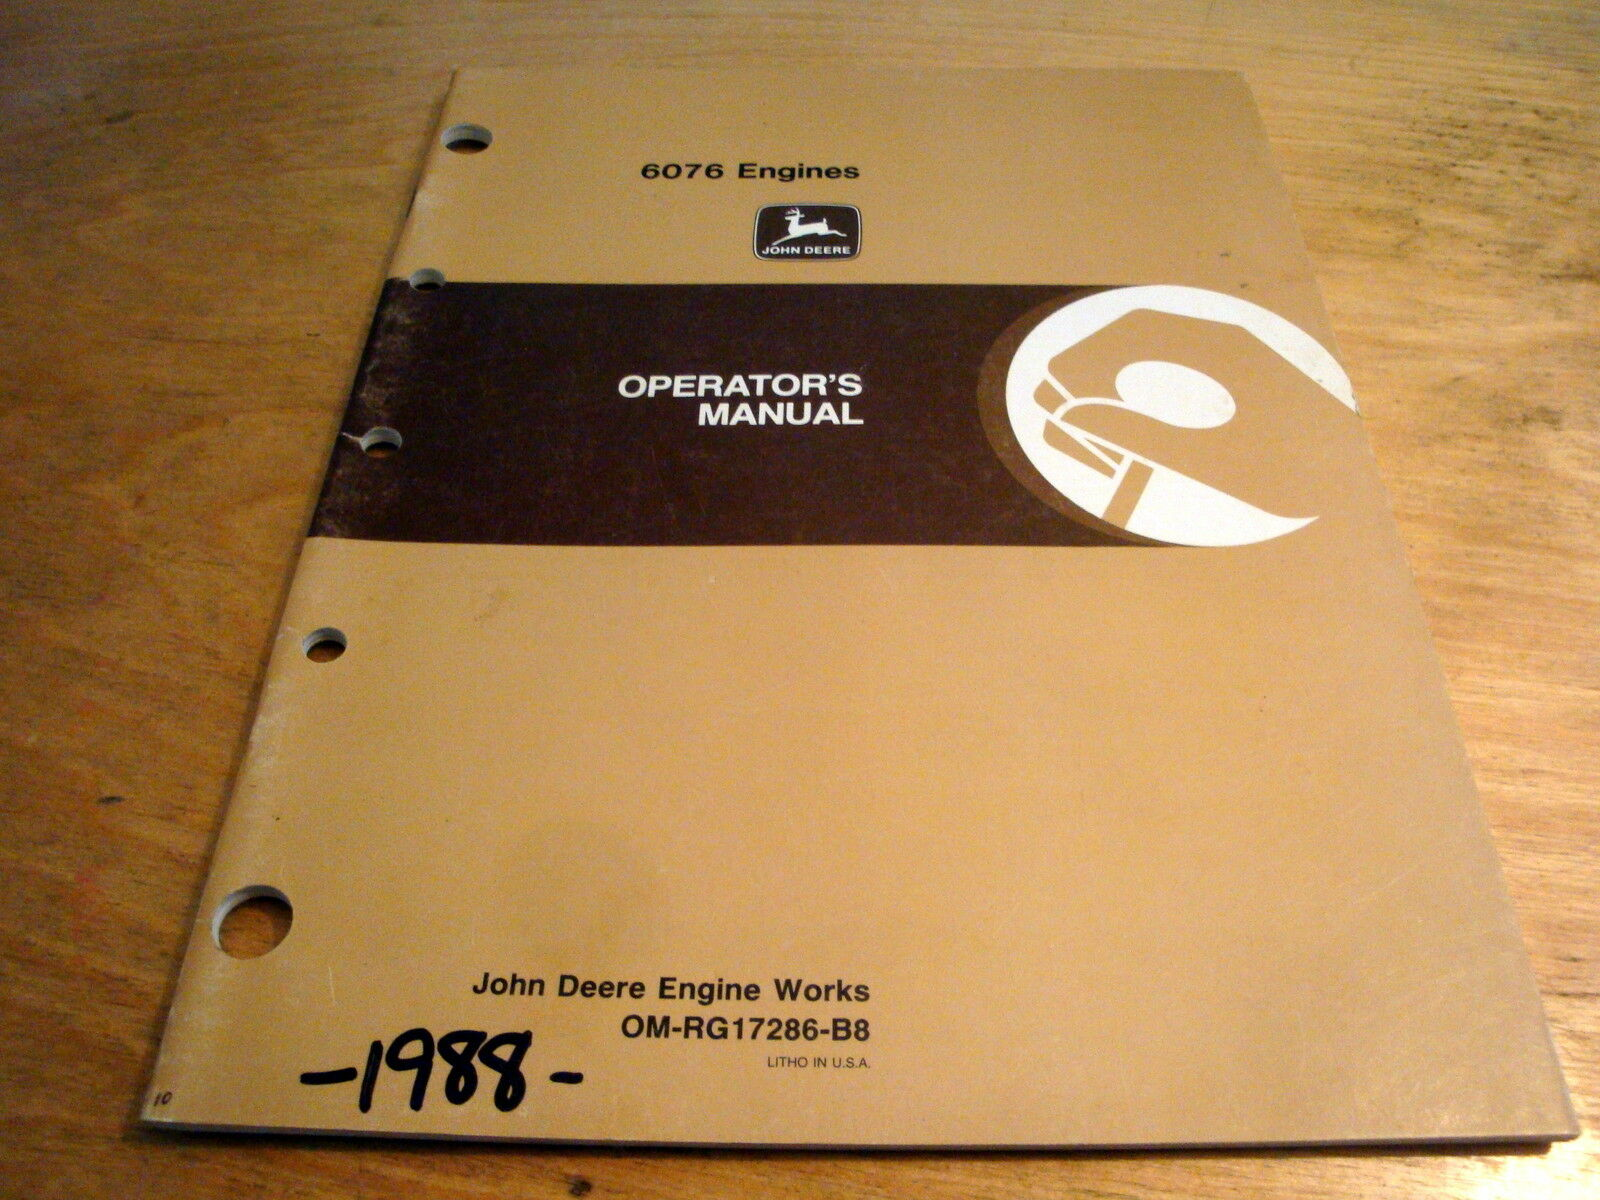 John Deere 6076 Engines 6076AF 6076HF Operator's Manual JD OEM 1 of 1Only 1  available ...